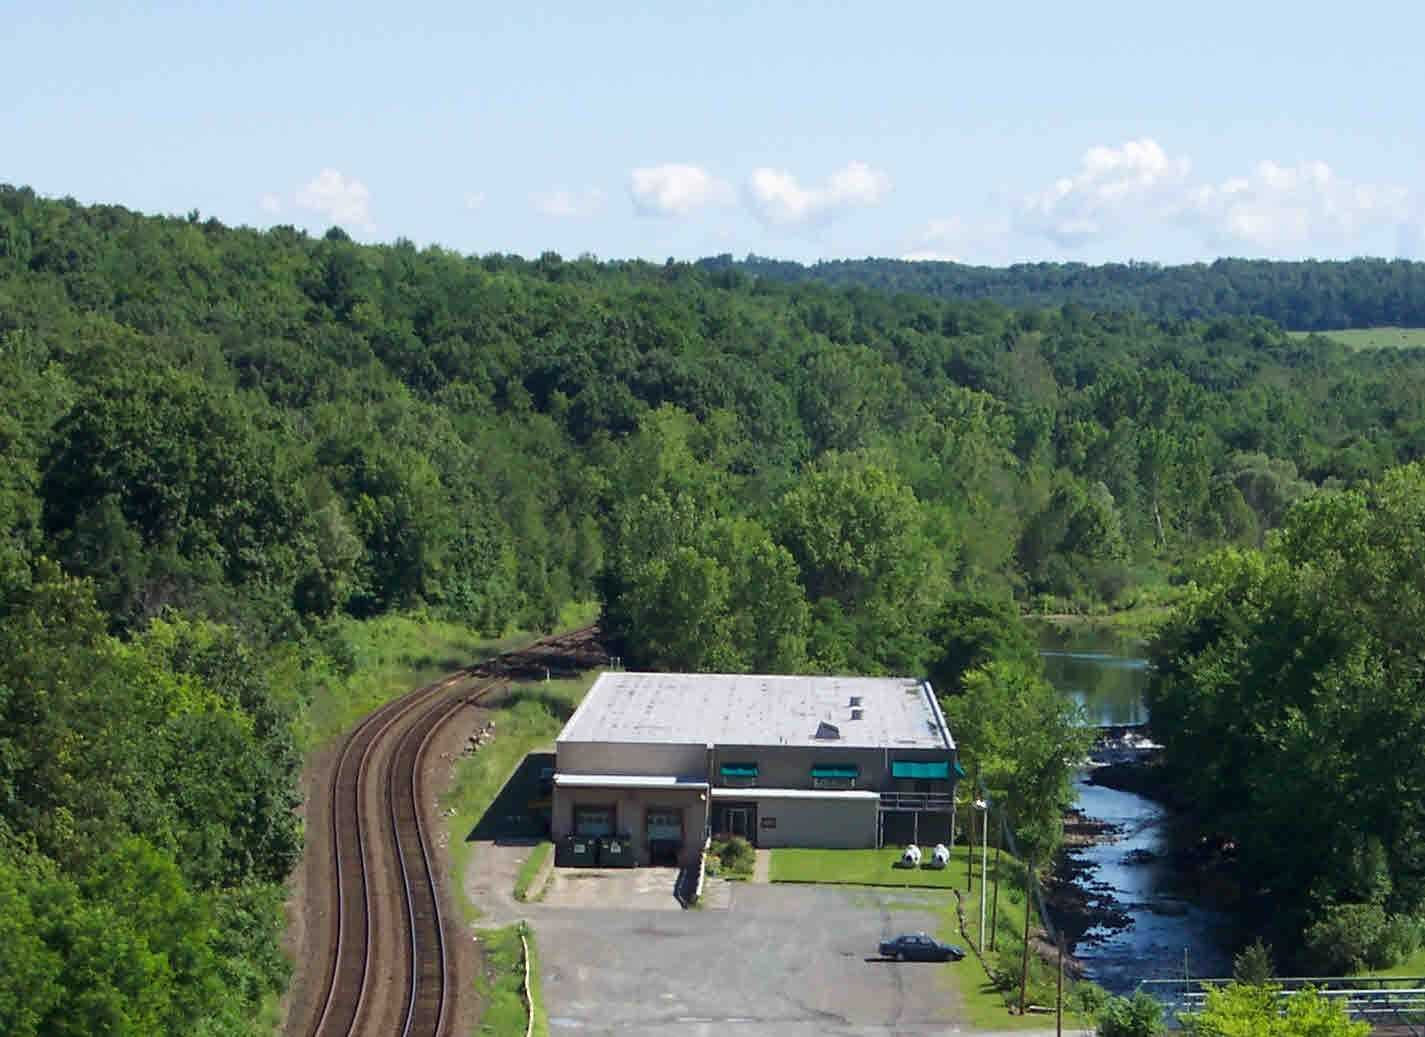 343 STATE ROUTE 295, Chatham, NY 12037